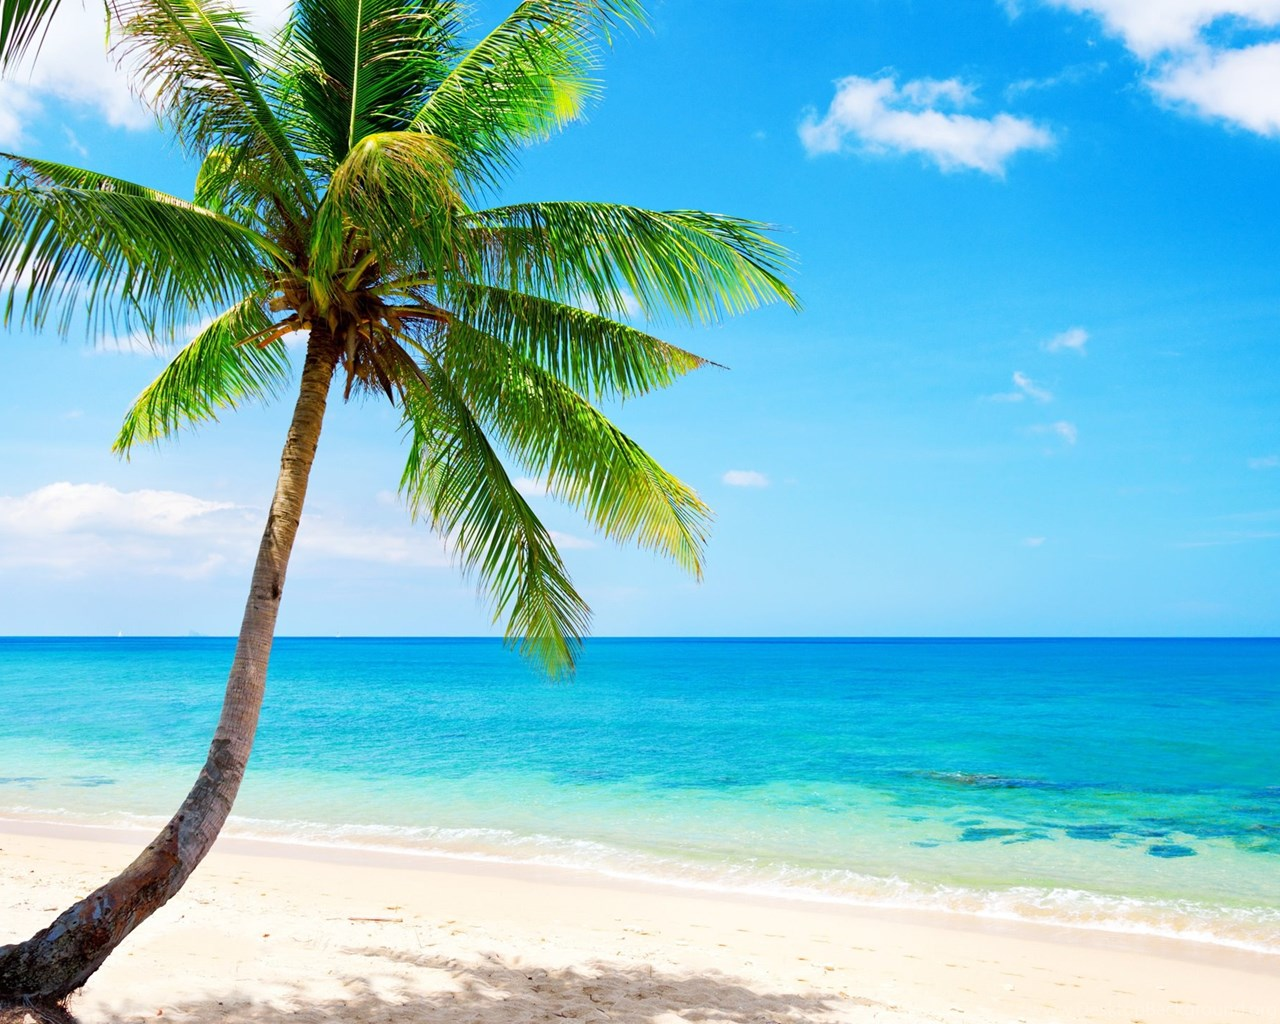 Lonely Palm Tree, Tropical, Beach, Coast, Sea Wallpapers